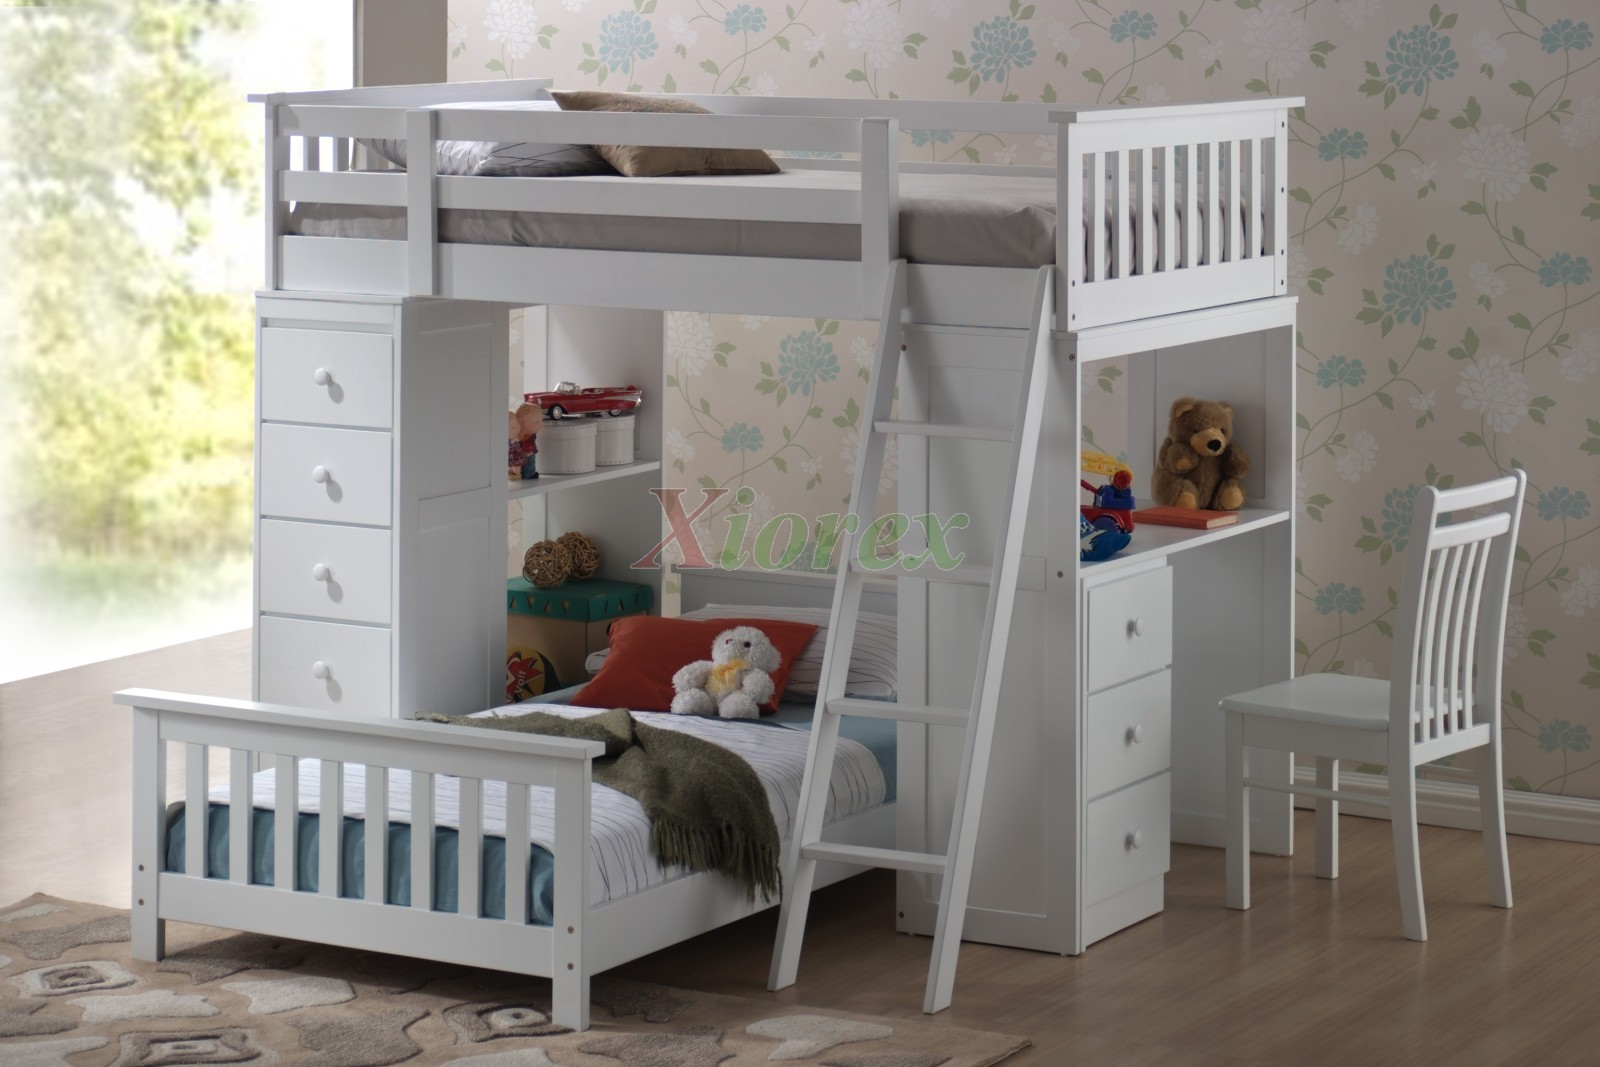 Buy Decorative Bunk Beds For Your Princess